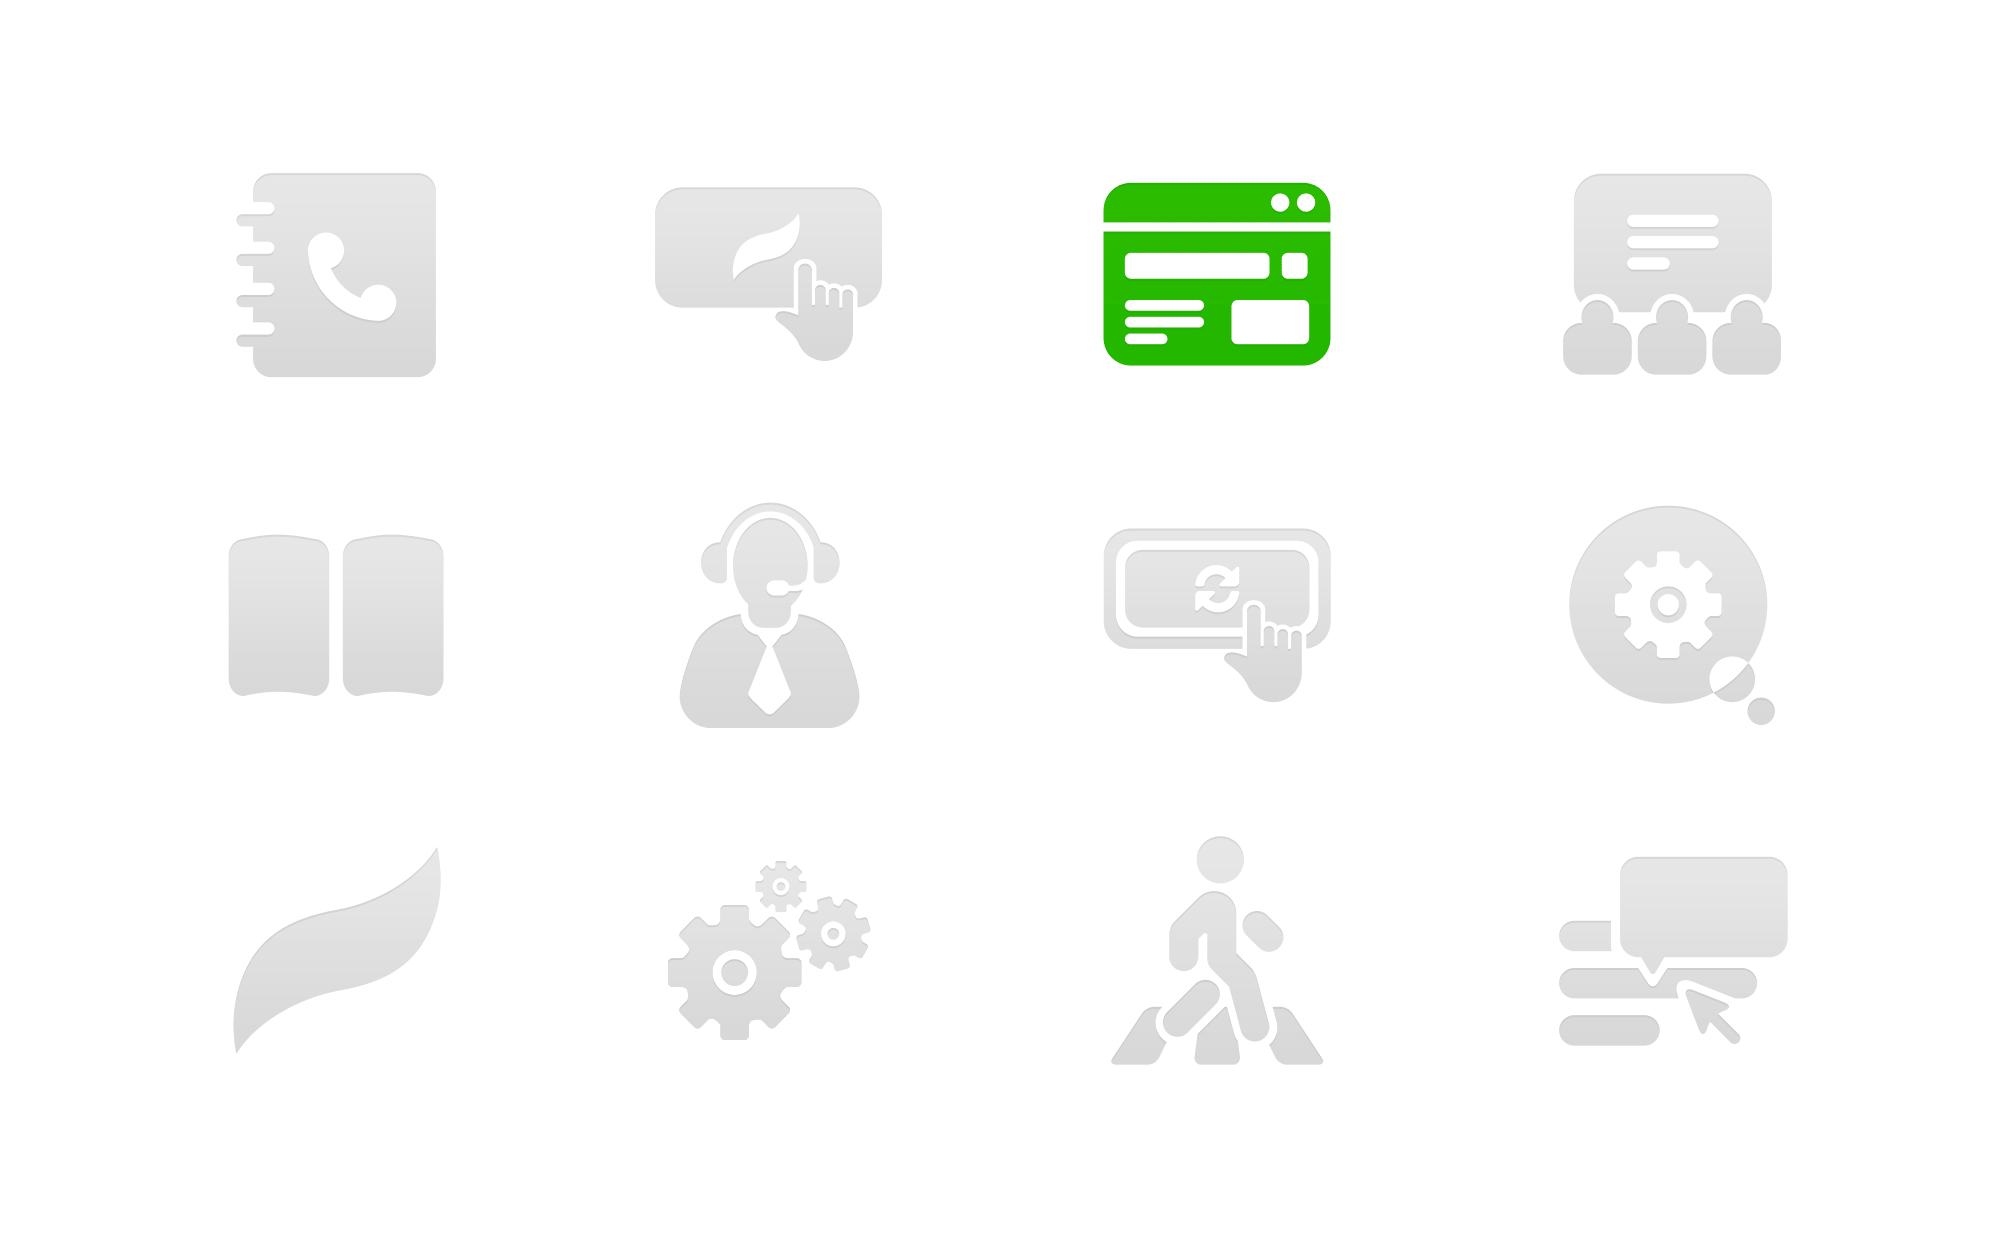 Icons design for advertising platform